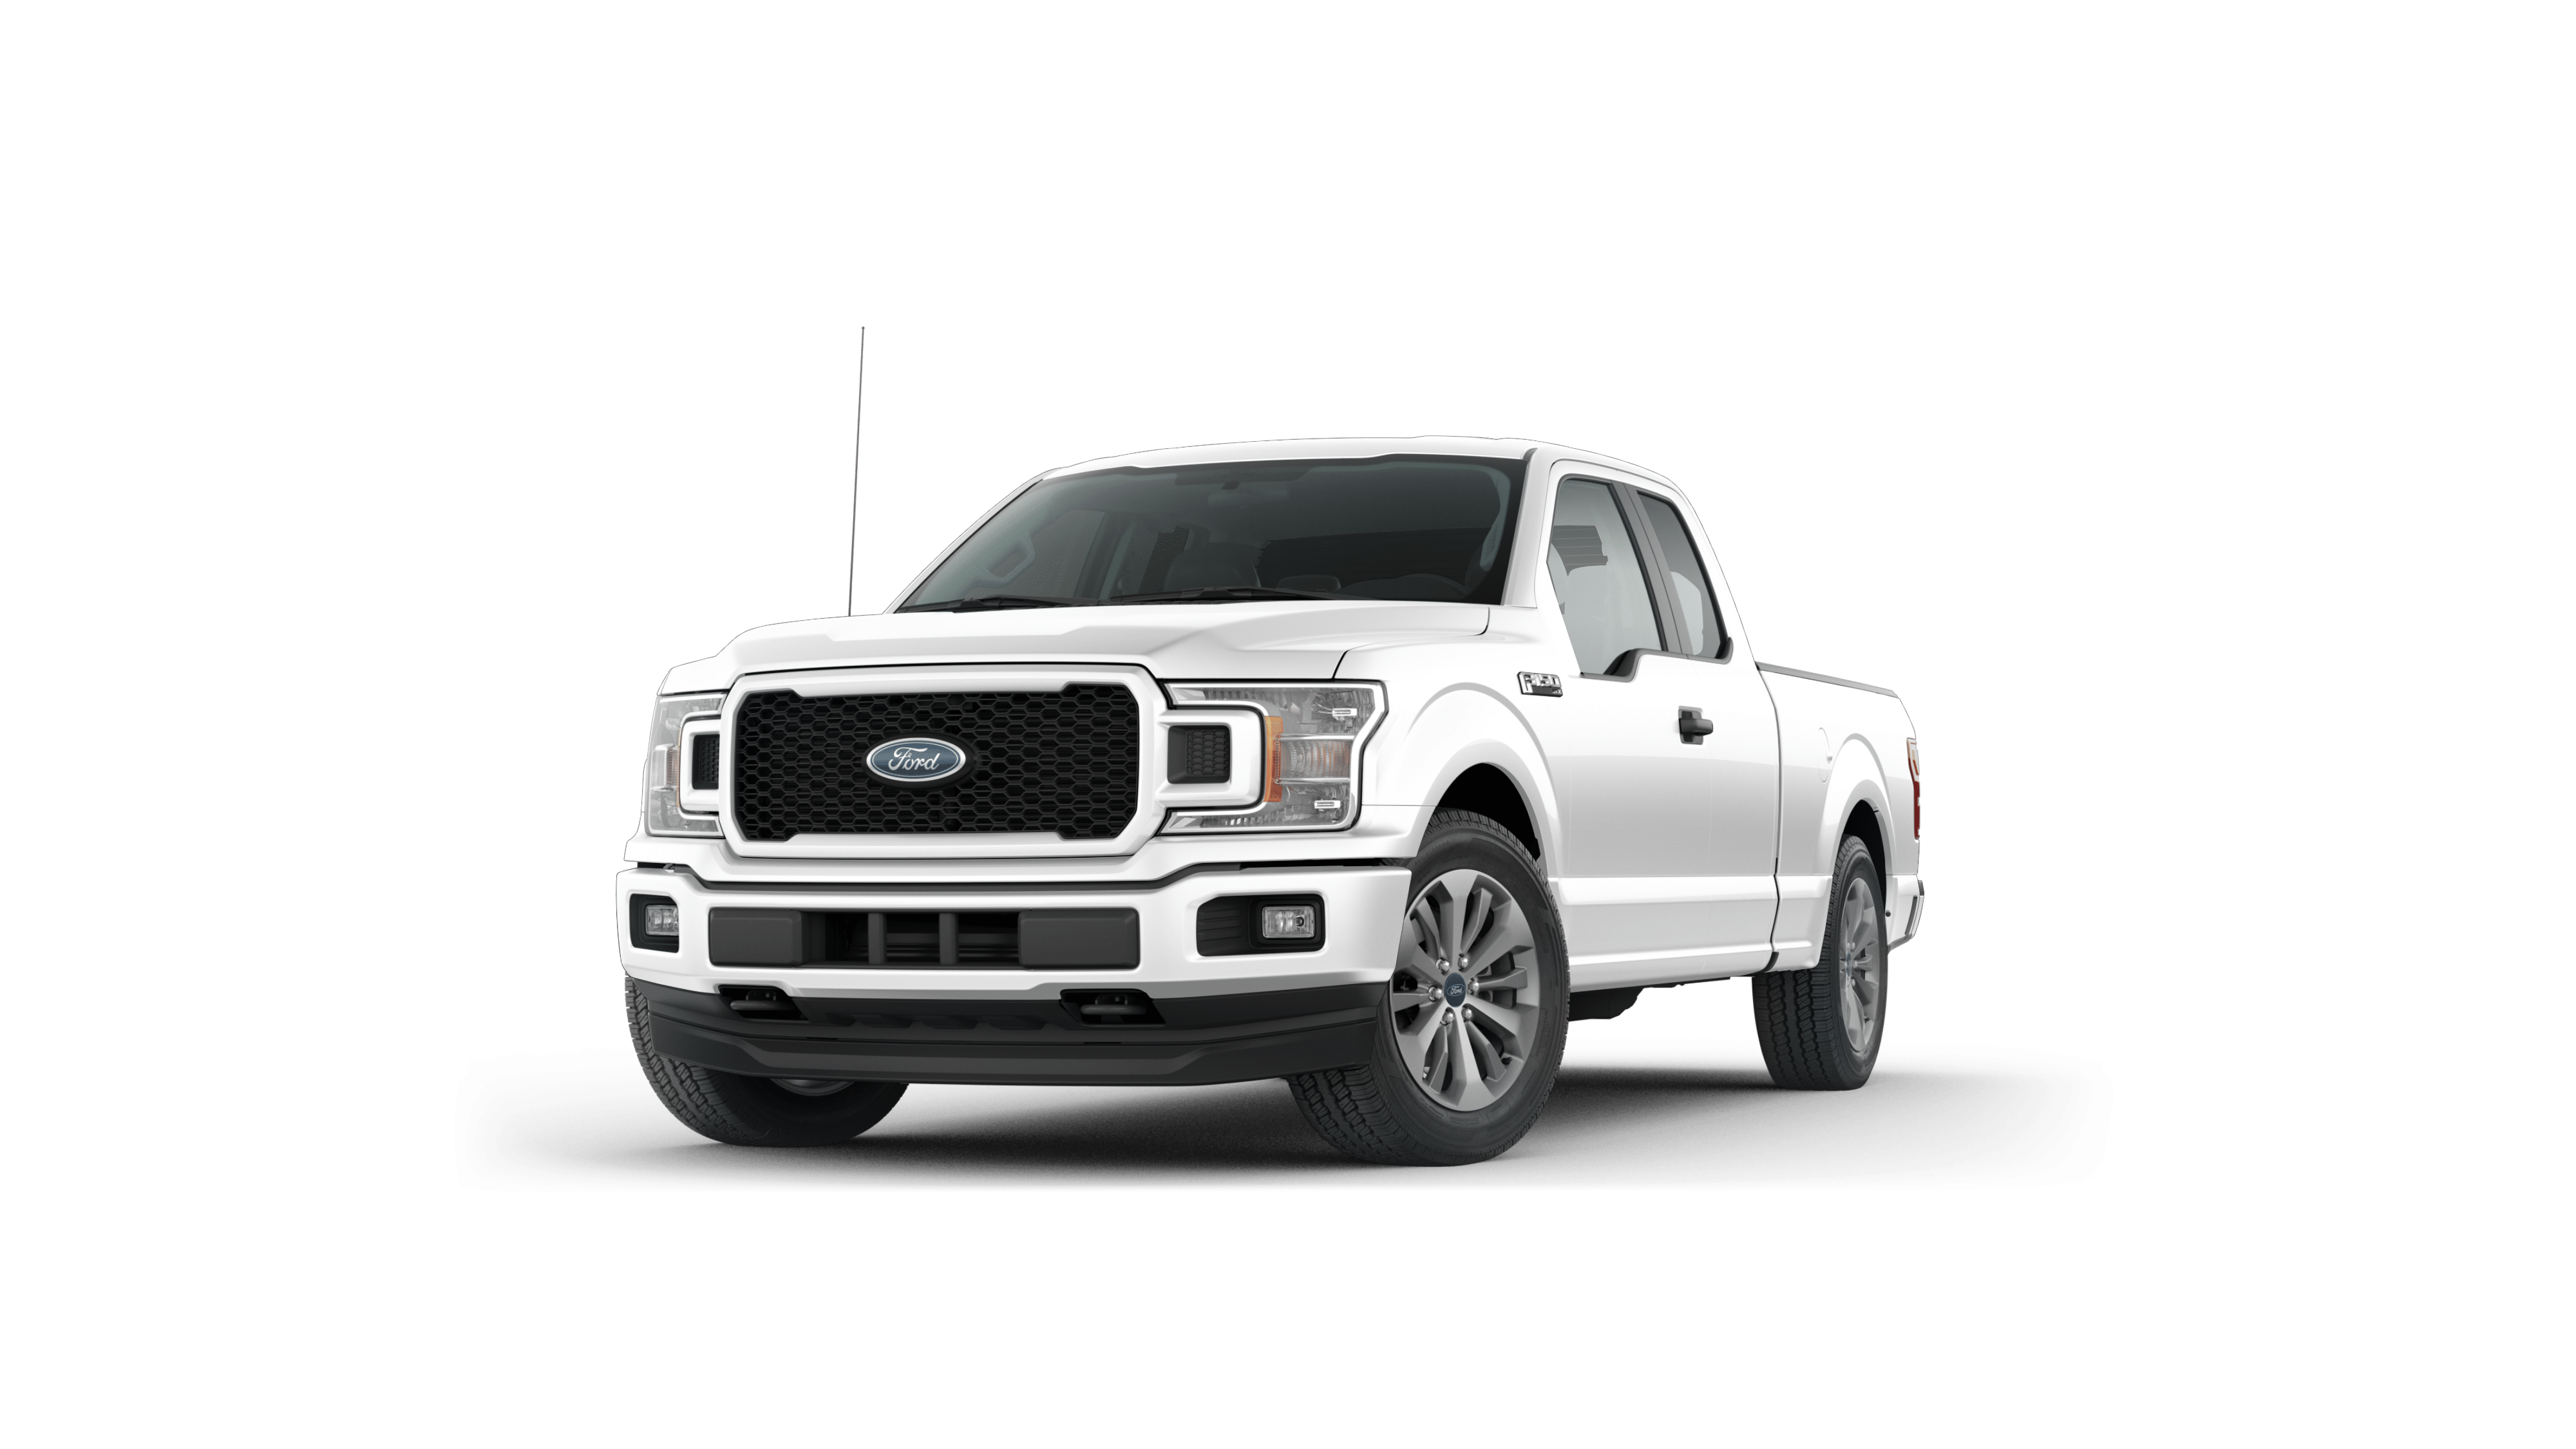 2018 ford f 150 for sale in natrona heights 1ftex1ep6jfc61449 cochran ford. Black Bedroom Furniture Sets. Home Design Ideas